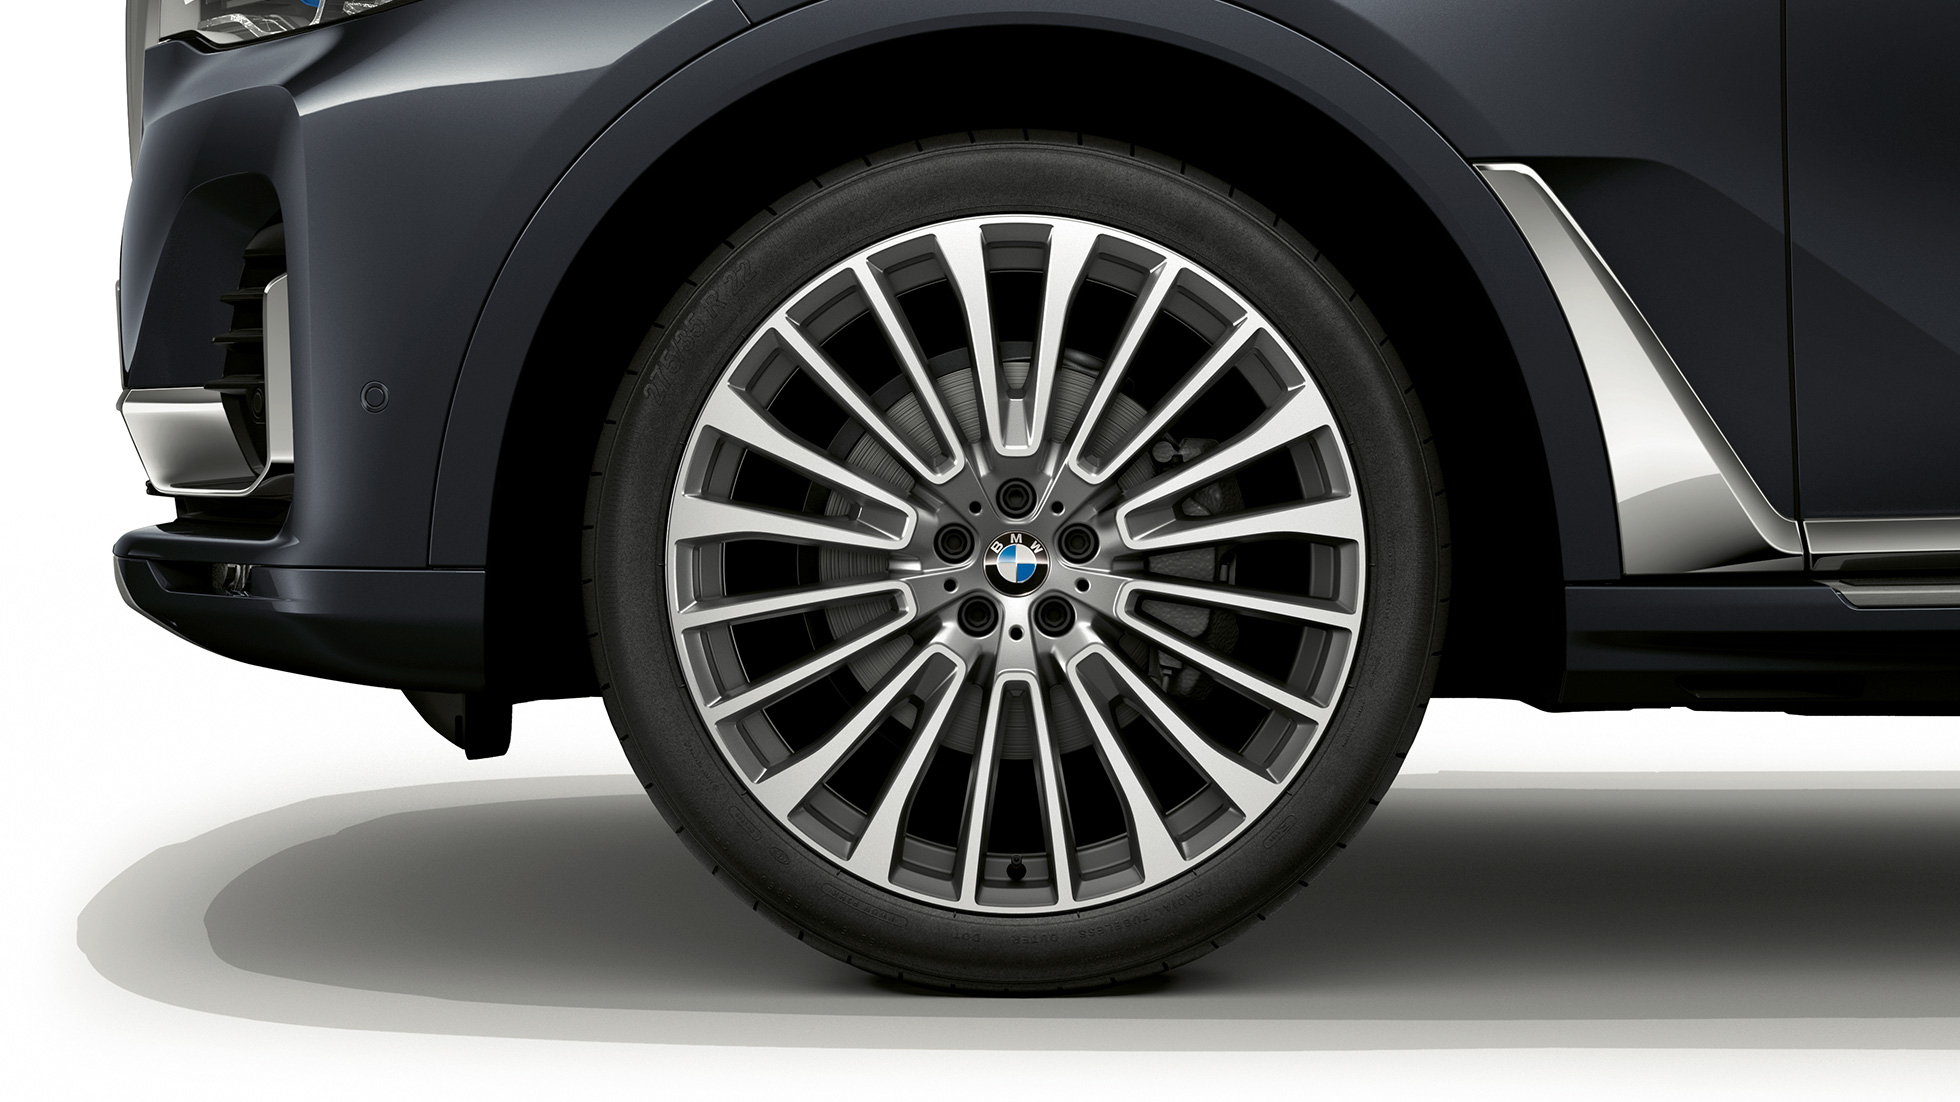 Close-up of the light alloy wheel of the BMW X7 with Design Pure Excellence features